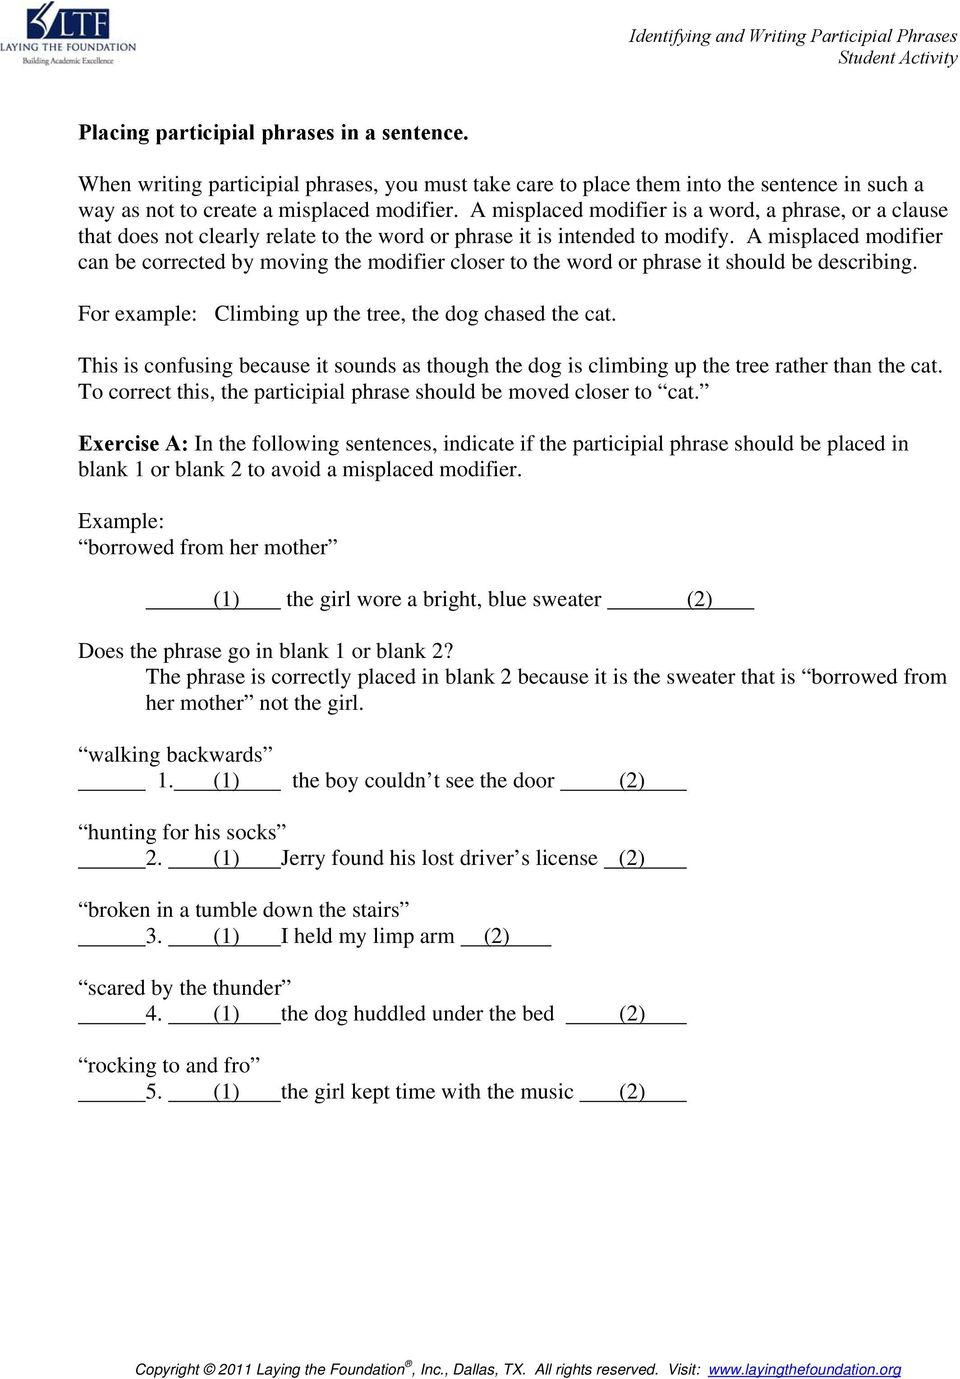 Identifying and Writing Participial Phrases One Skill at a Time – Misplaced Modifiers Worksheet